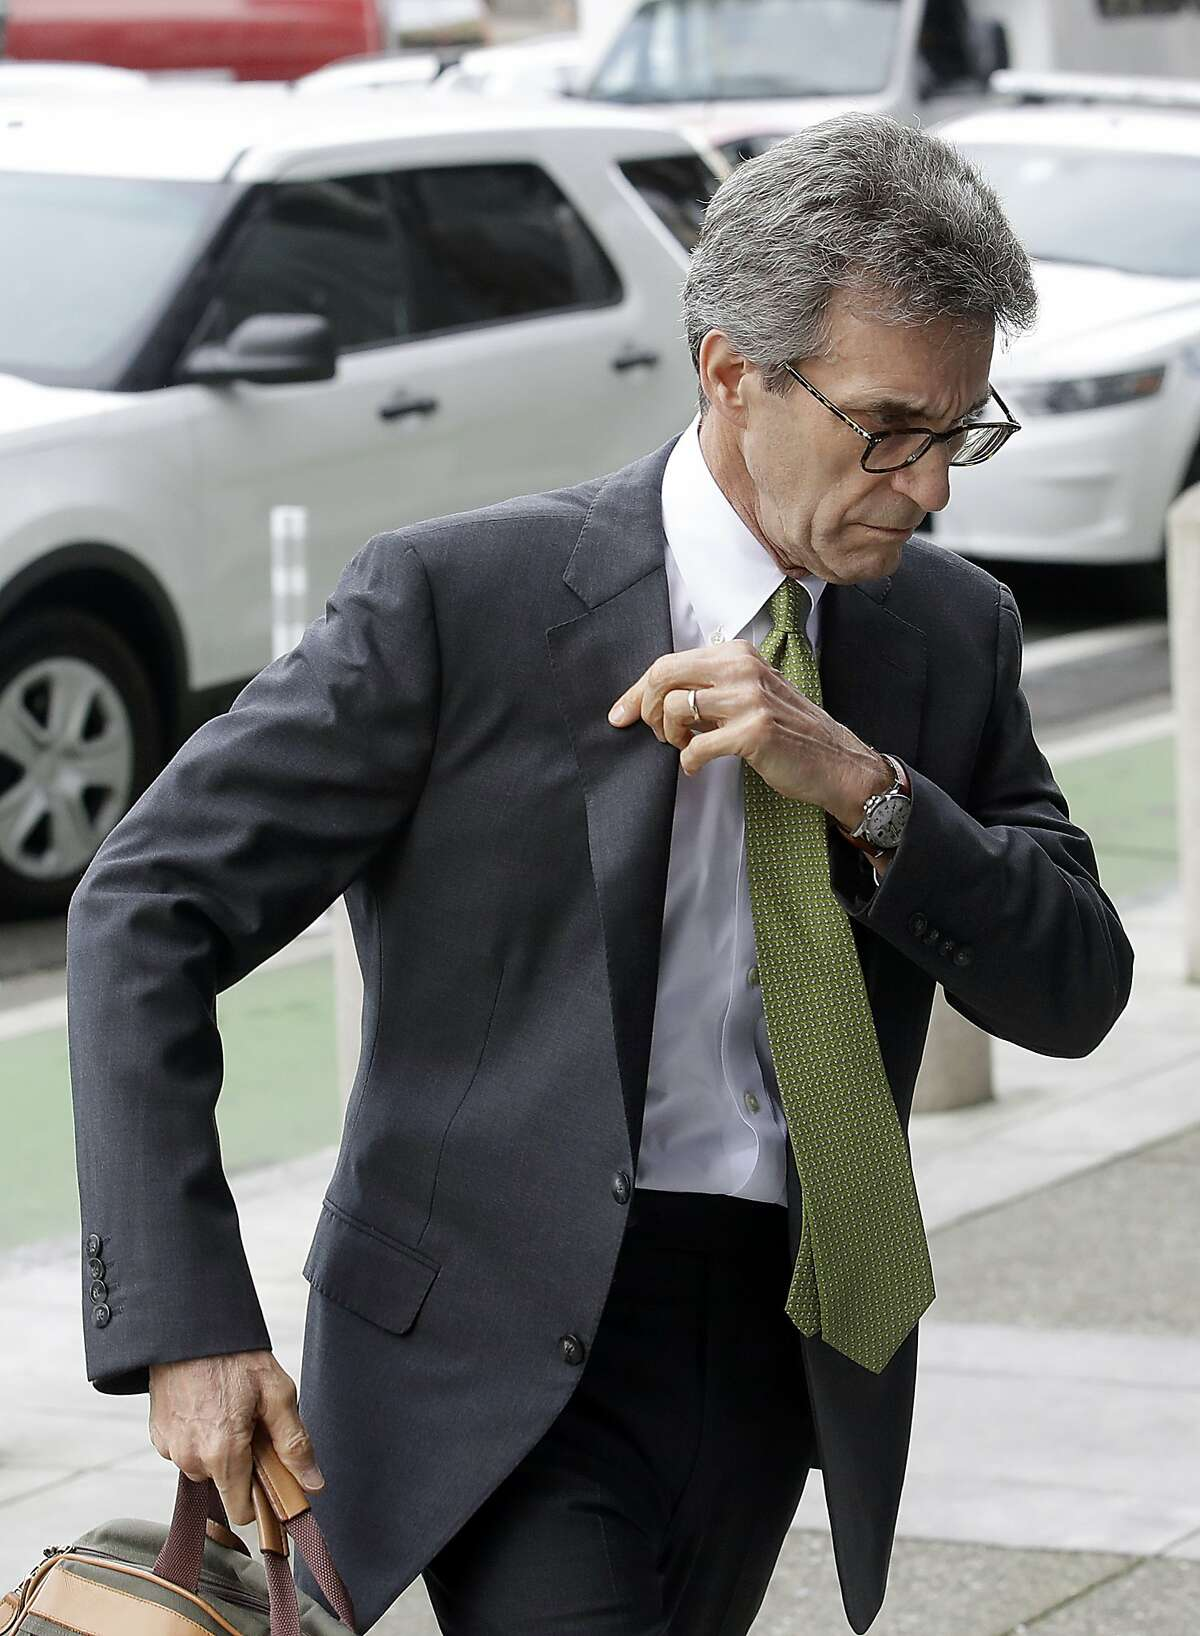 Attorney Stephen Karotkin, representing Pacific Gas & Electric Corp., arrives at a Federal Courthouse in San Francisco, Tuesday, Jan. 29, 2019. Faced with potentially ruinous lawsuits over California's recent wildfires, Pacific Gas & Electric Corp. filed for bankruptcy protection Tuesday in a move that could lead to higher bills for customers of the nation's biggest utility and reduce the size of any payouts to fire victims. (AP Photo/Jeff Chiu)